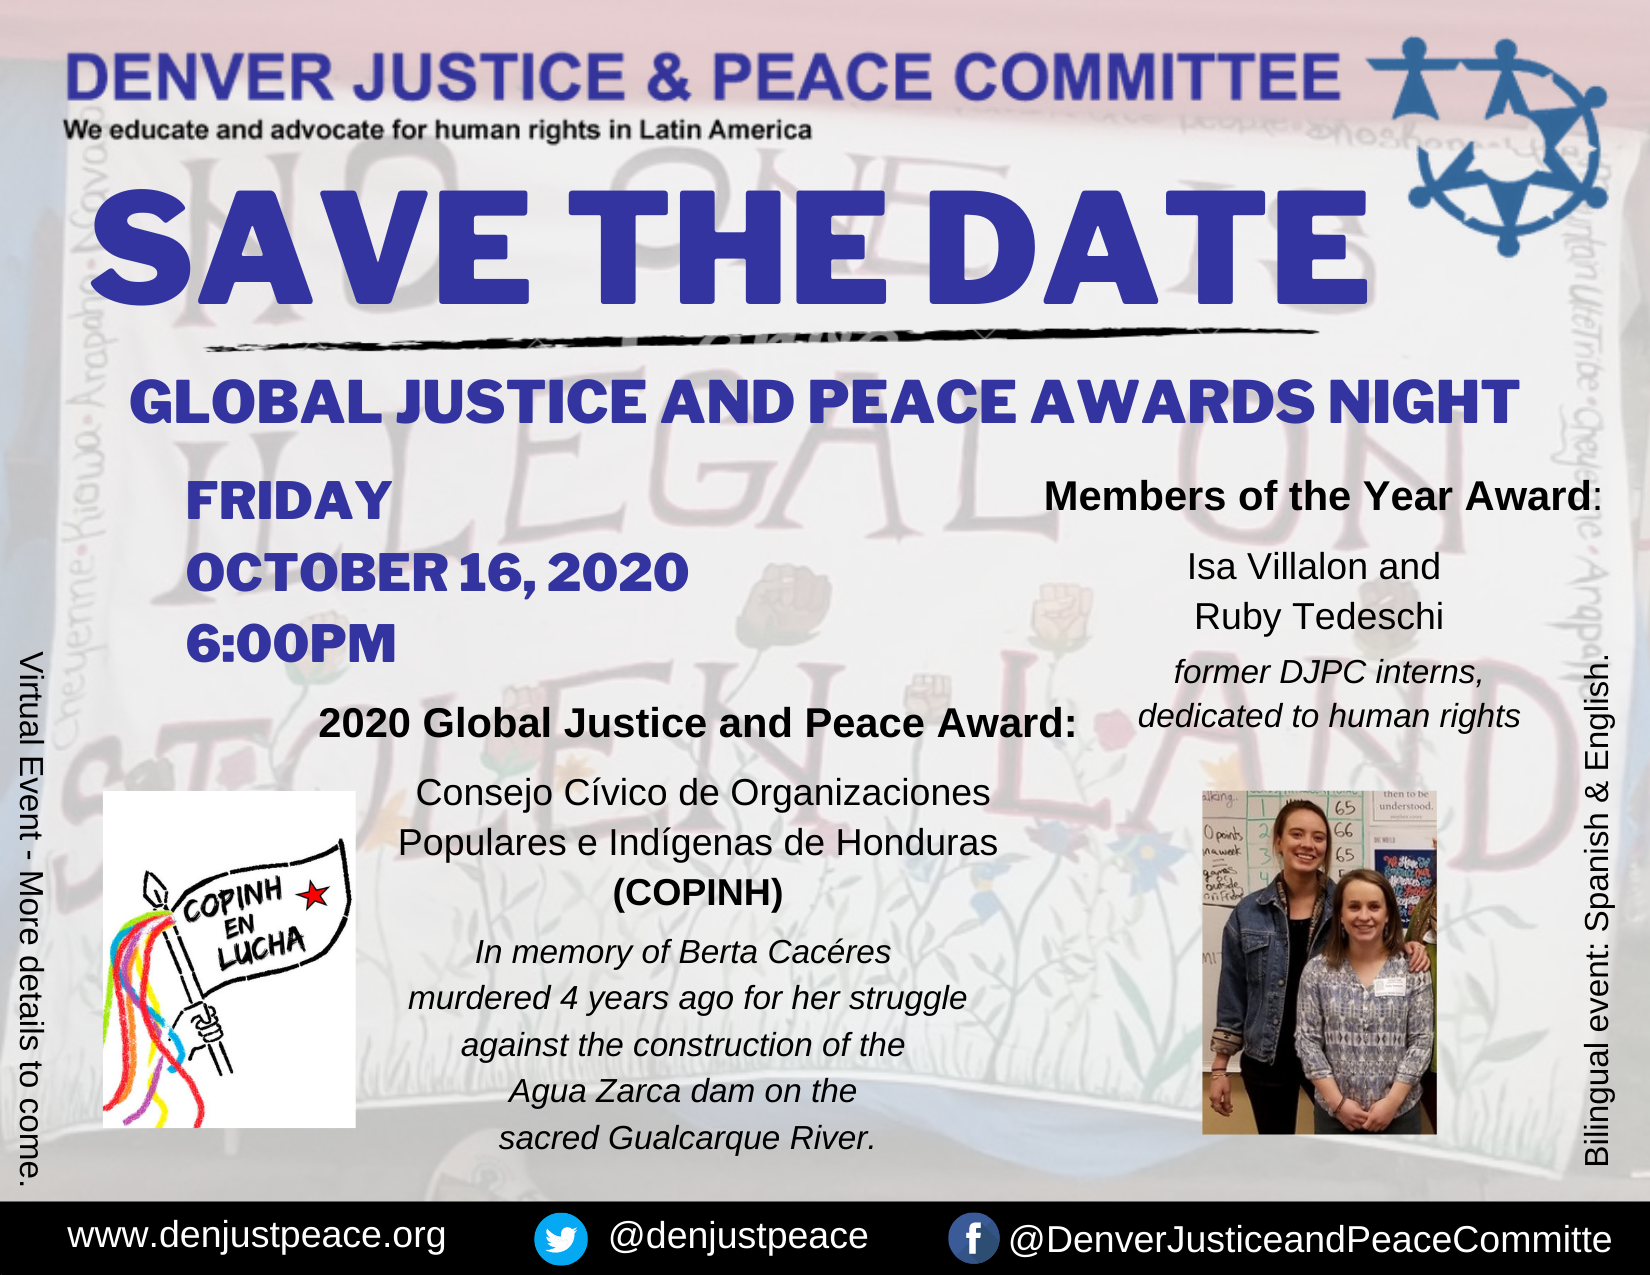 Save the Date: Awards Night 2020